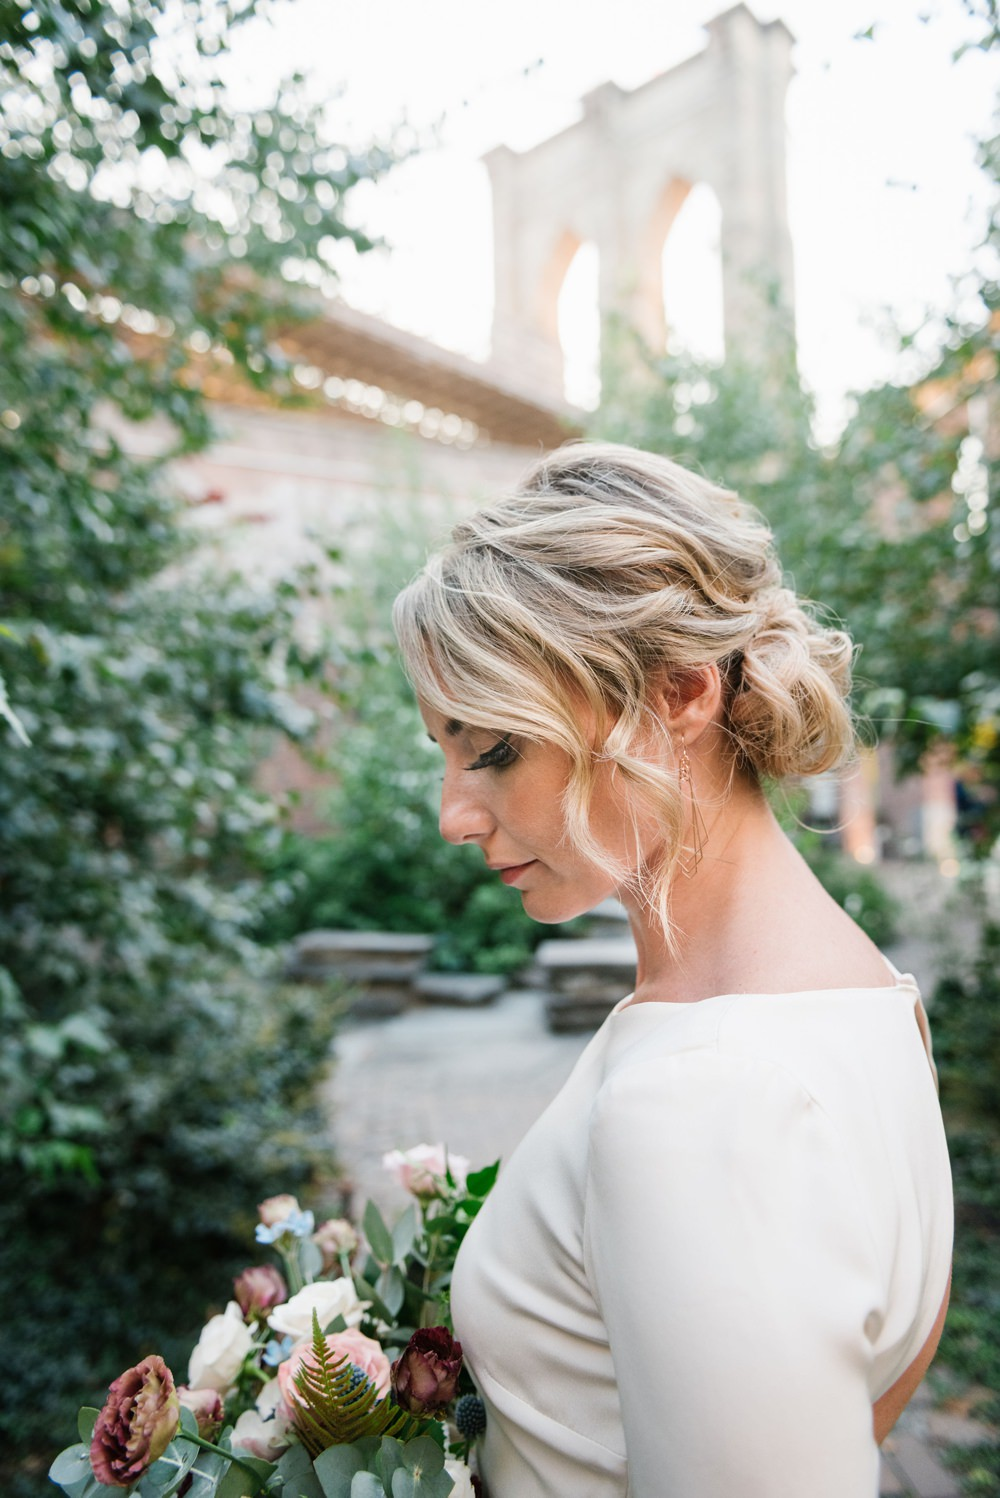 Bride Bridal Hair Style Up Do Chignon Brooklyn Elopement Everly Studios